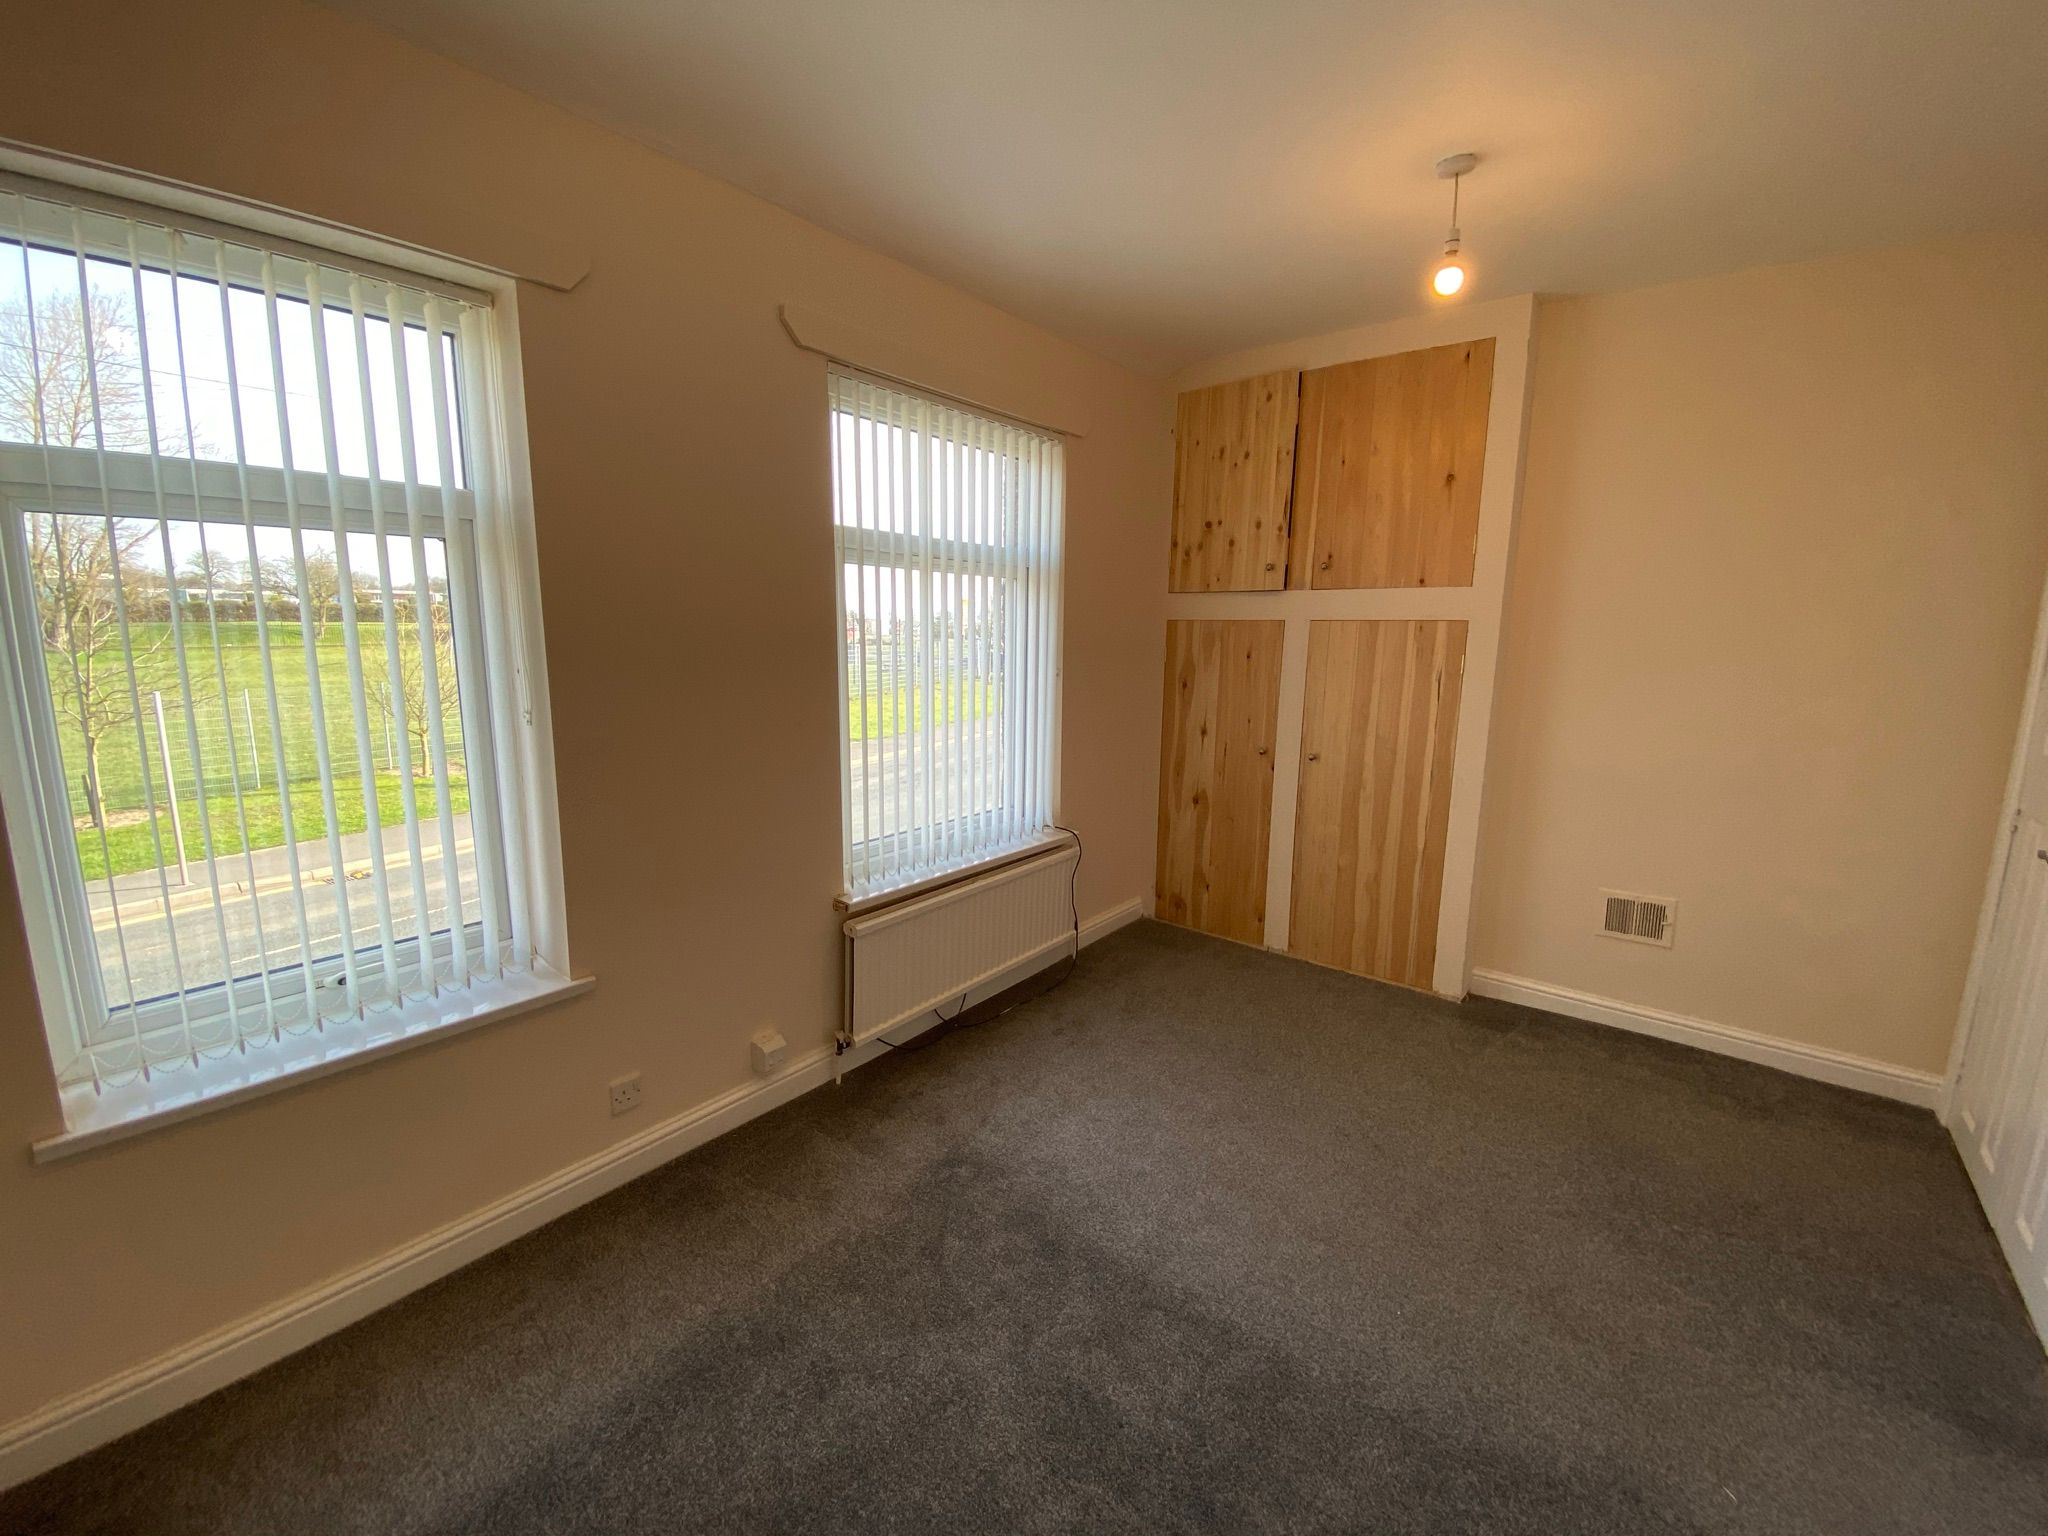 2 bedroom mid terraced house Let Agreed in Ferryhill - Photograph 6.